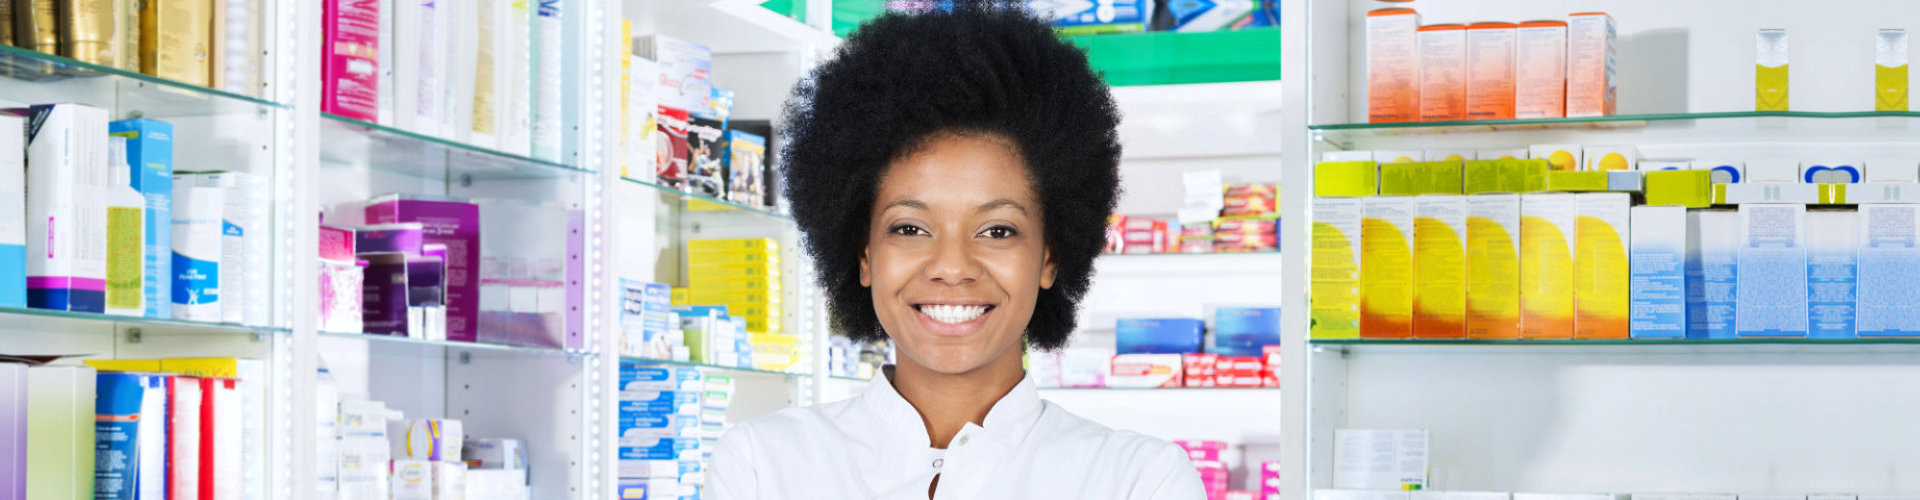 attractive female pharmacist smiling